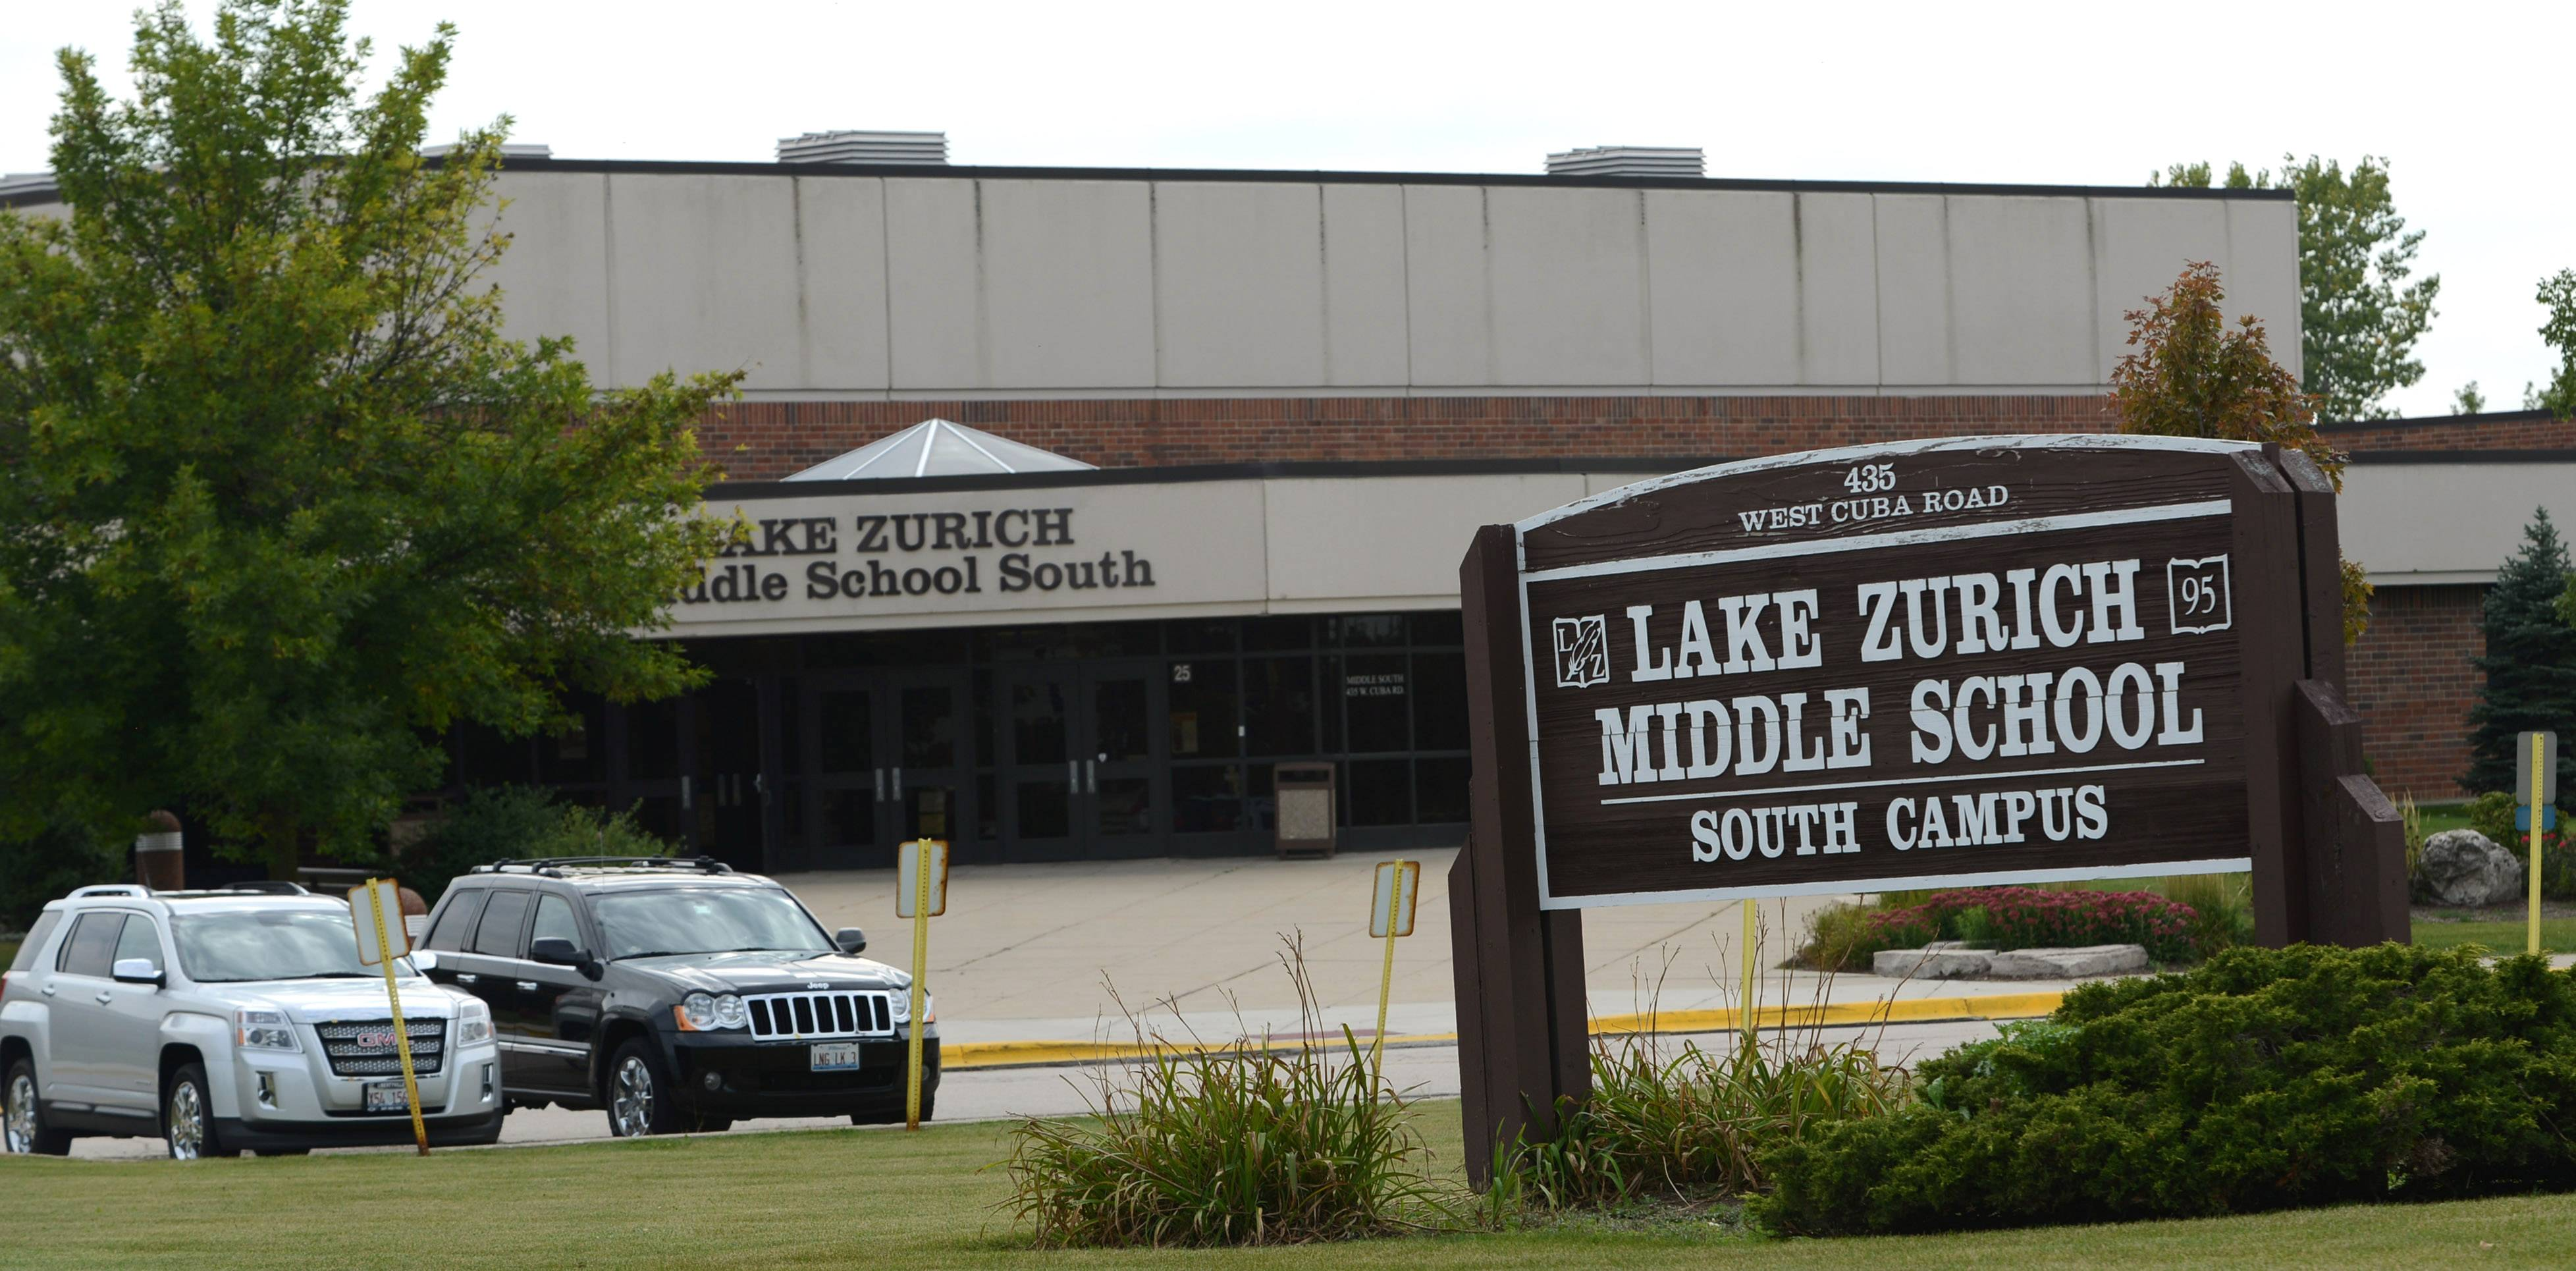 Building improvements such as air conditioning and new science and technology labs at Lake Zurich Middle School South and other District 95 schools could be funded through a bond referendum on next year's primary ballot. School board members will discuss the proposal beginning Thursday.